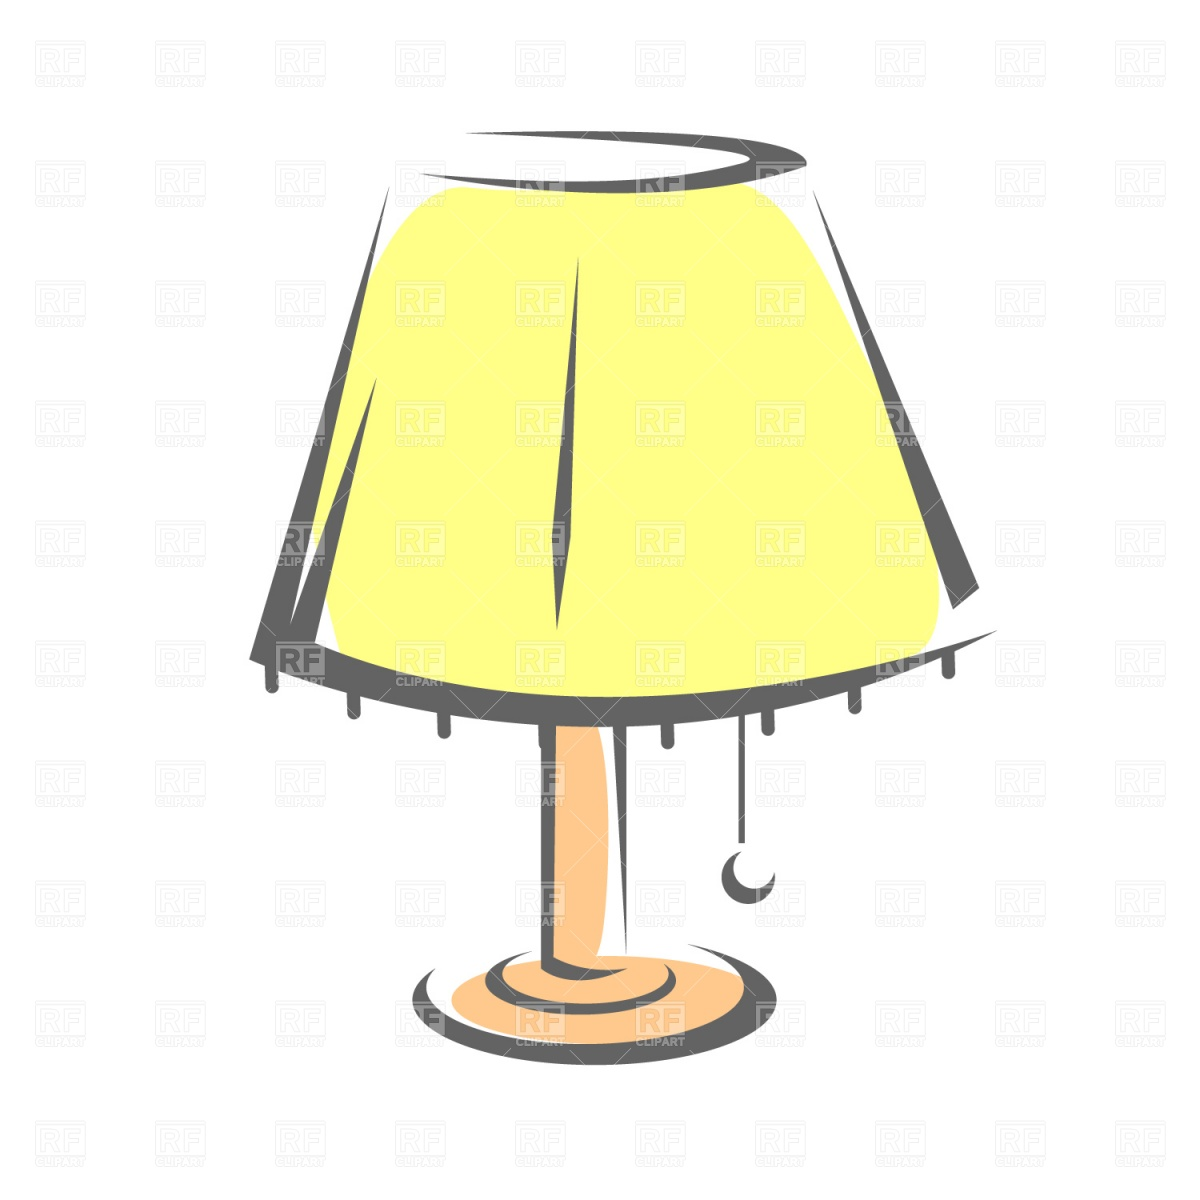 Lamp With Shade 1124 Objects Download Royalty Free Vector Clipart